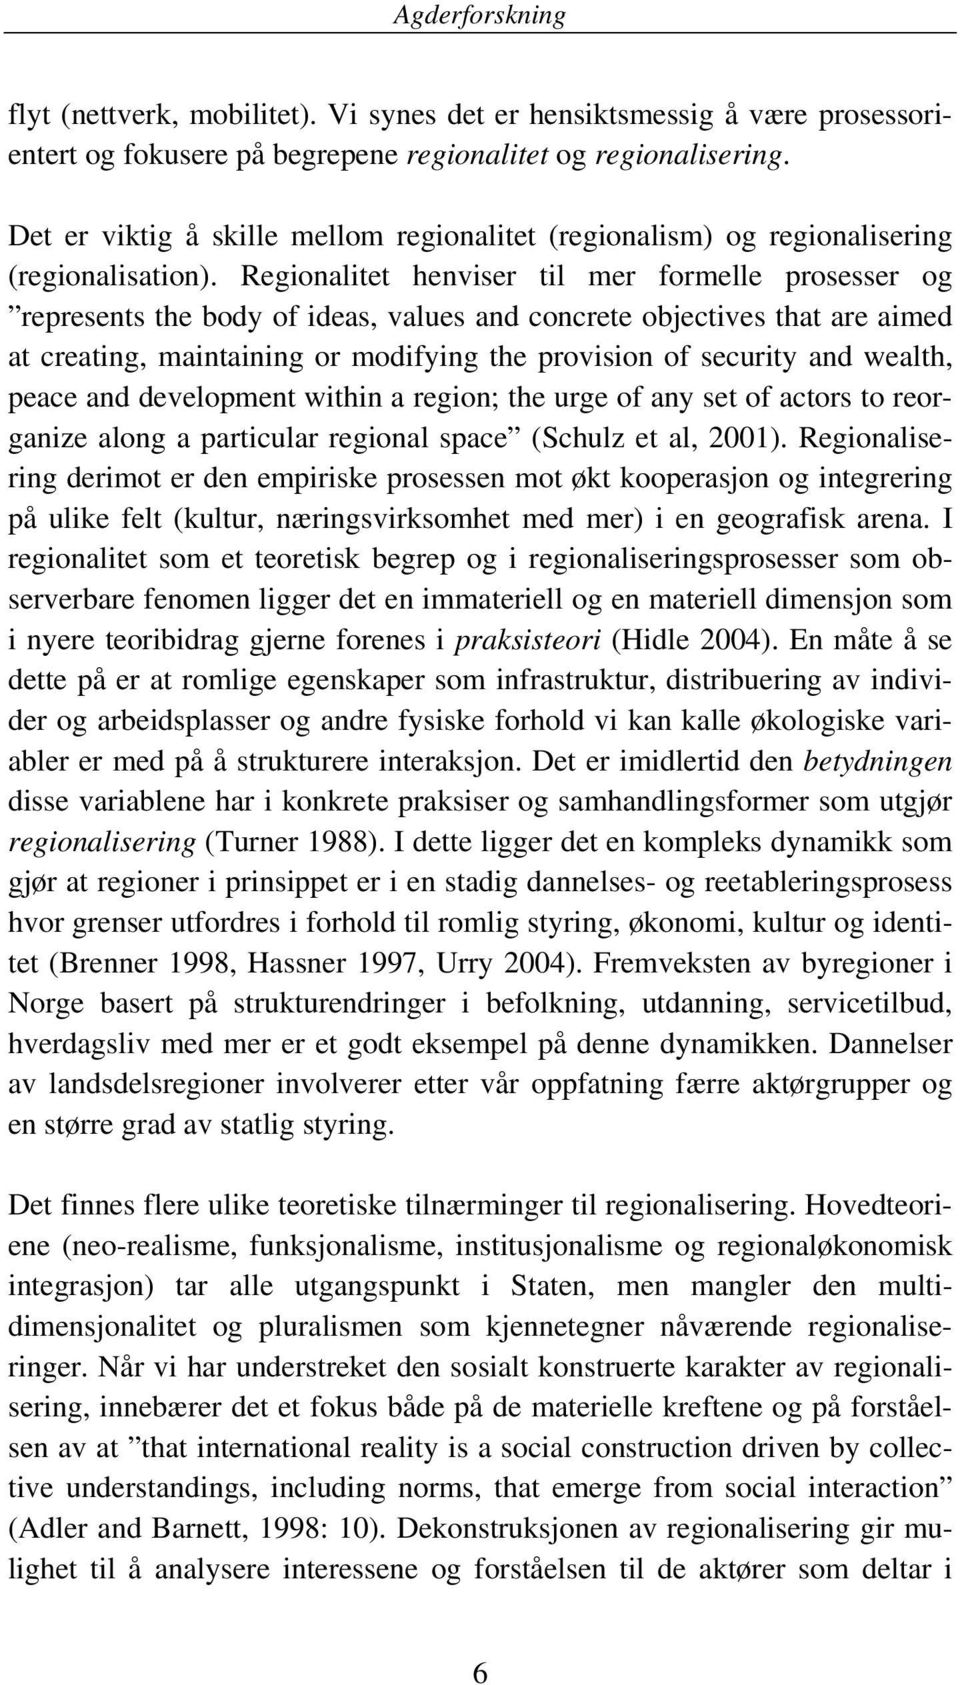 Regionalitet henviser til mer formelle prosesser og represents the body of ideas, values and concrete objectives that are aimed at creating, maintaining or modifying the provision of security and